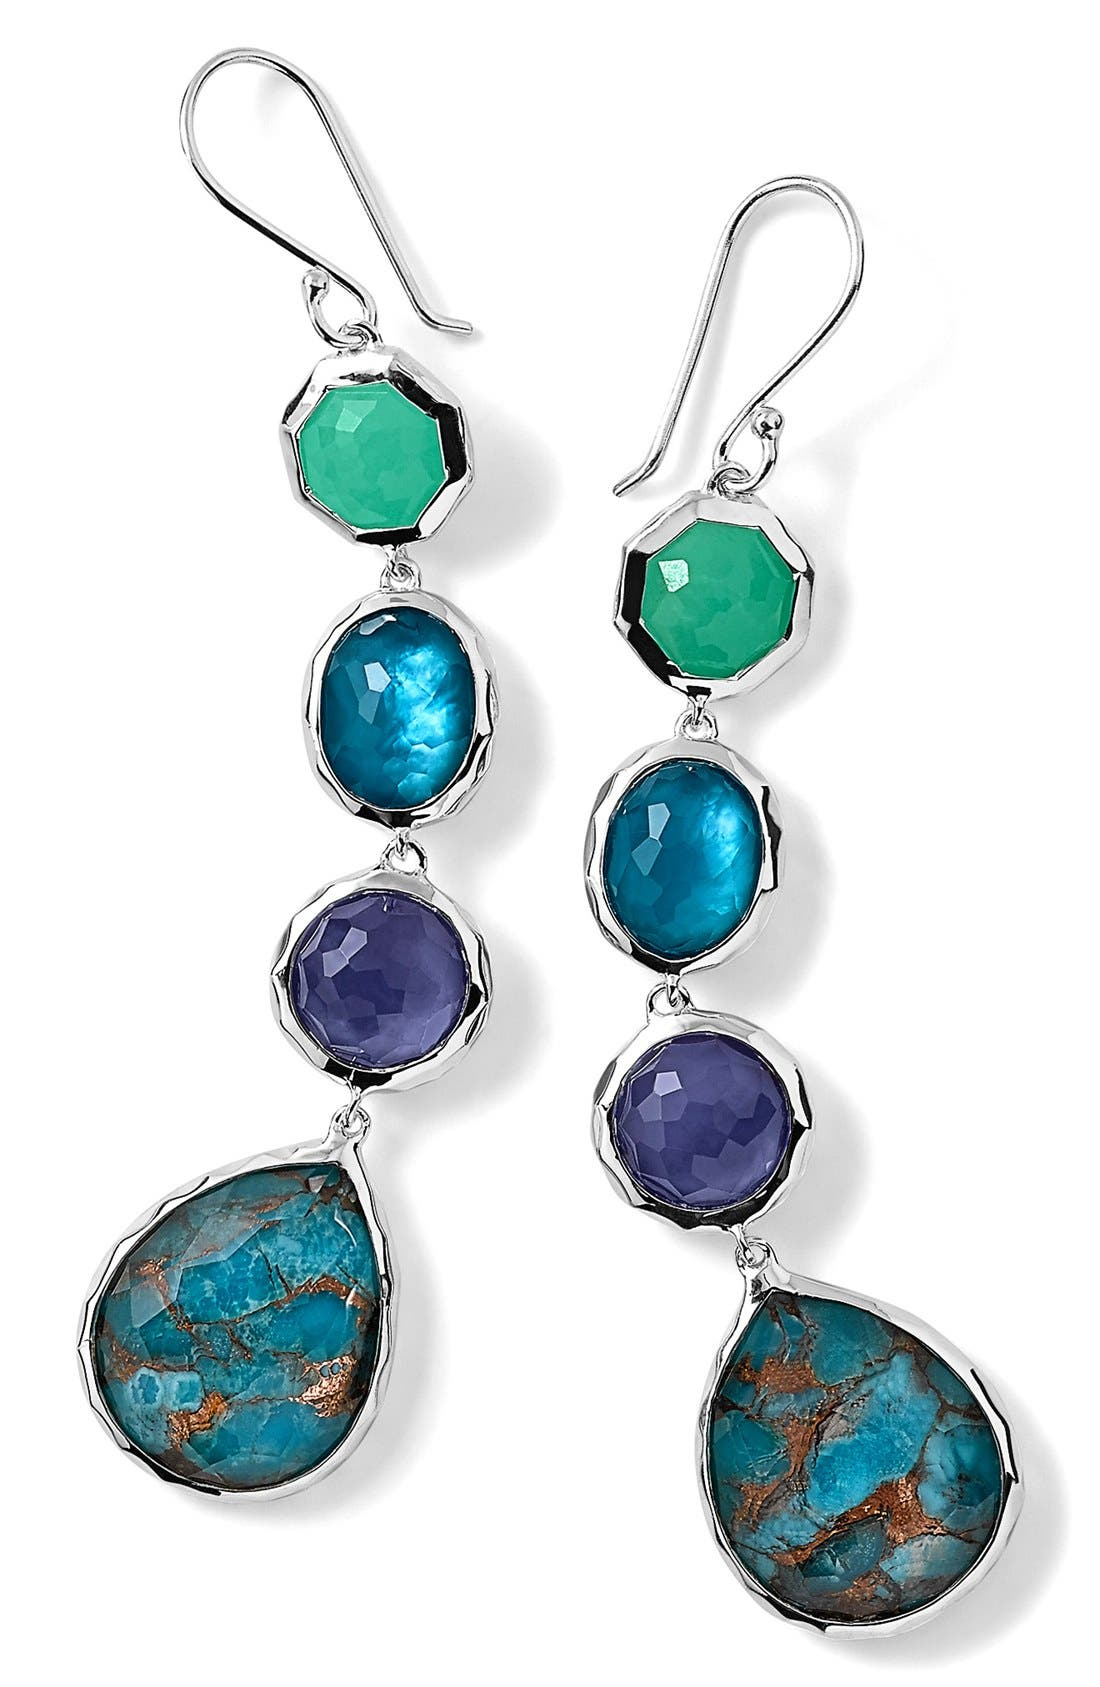 Alternate Image 1 Selected - Ippolita 4-Stone Drop Earrings (Nordstrom Exclusive)